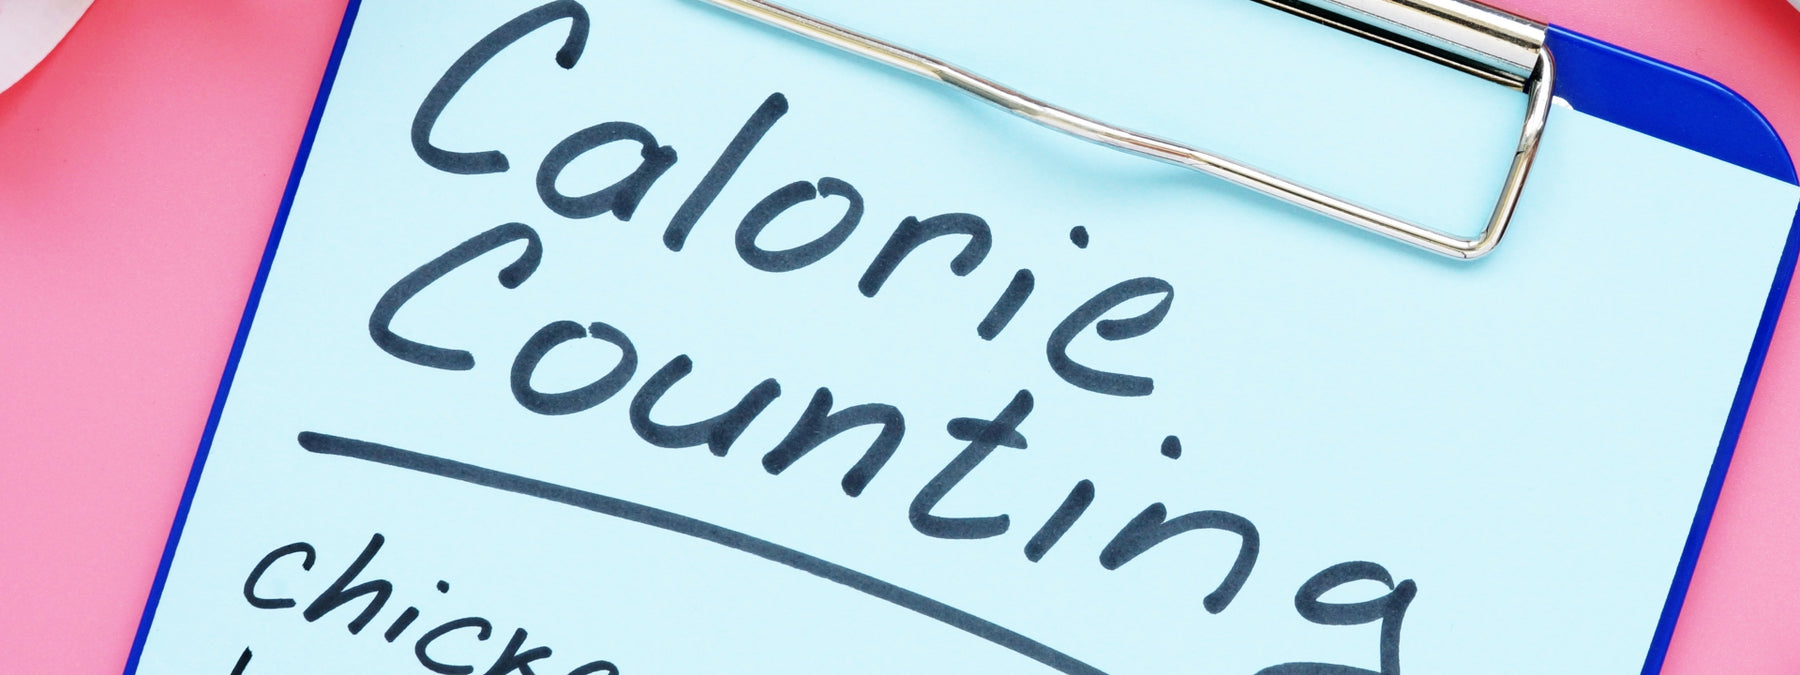 Basics of Calorie Counting - 6 Important Tips